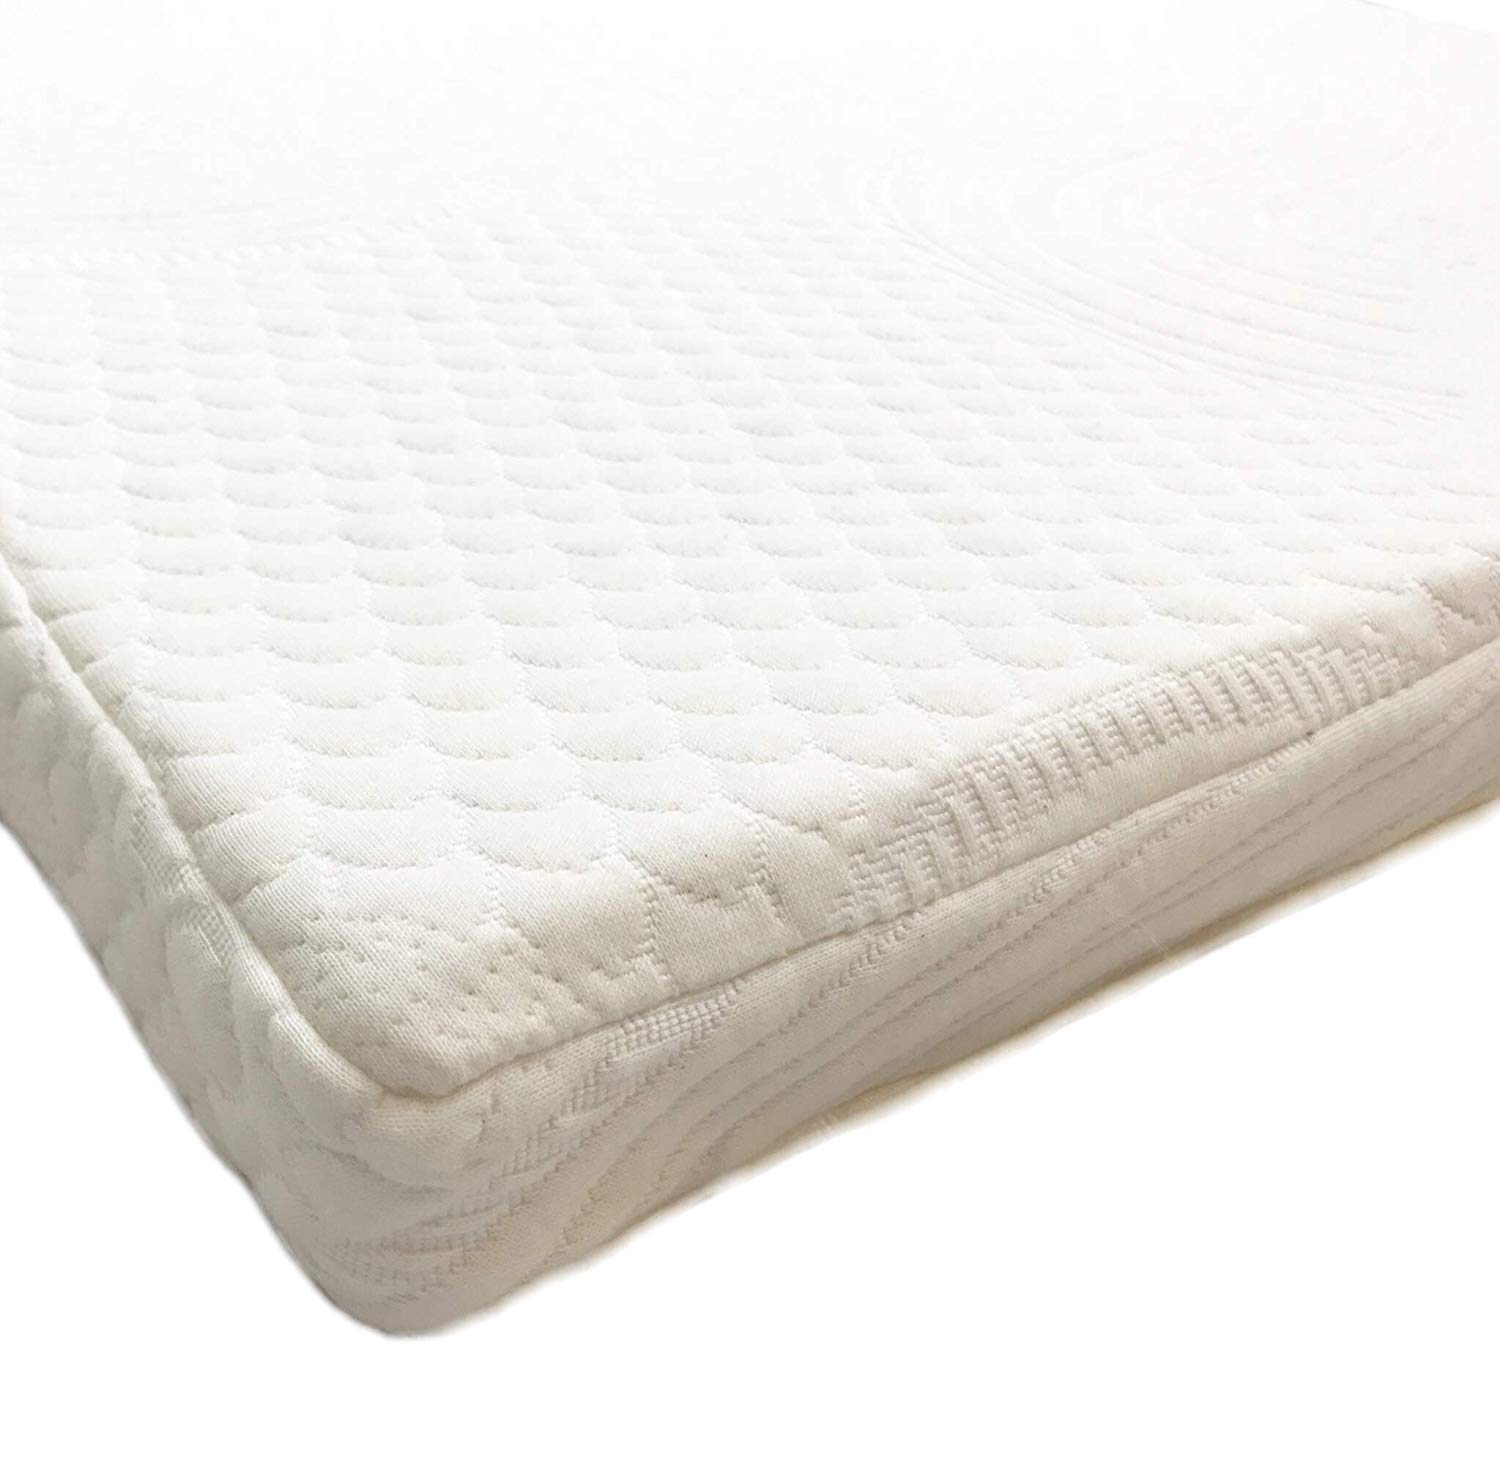 OrganicTextiles 100 Natural Latex Mattress Topper Queen Size, 6 Inch, Medium Firm , Premium Organic Cotton Cover Protector